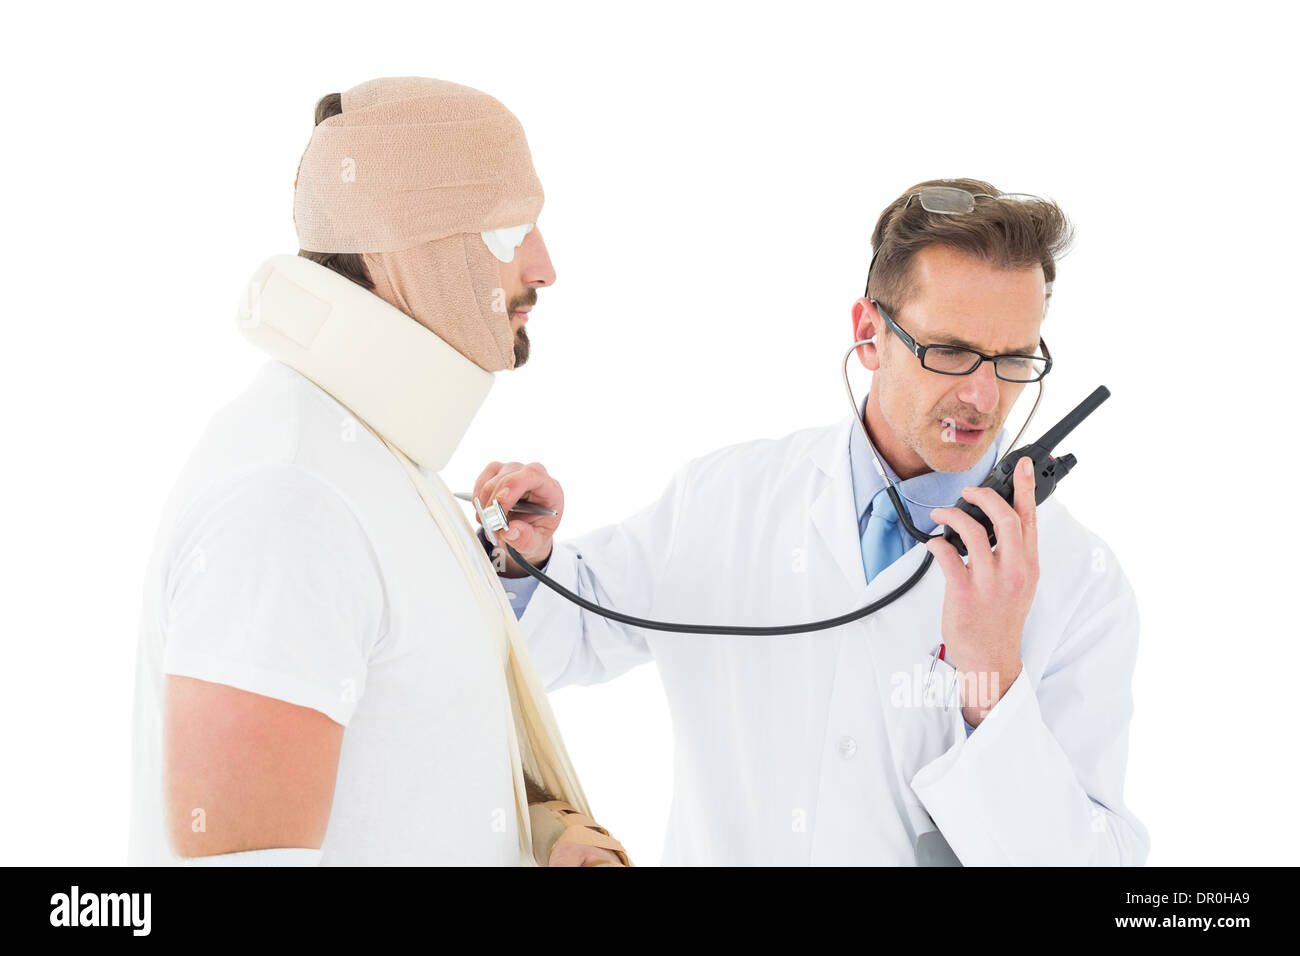 Doctor auscultating patient tied up in bandage with stethoscope - Stock Image